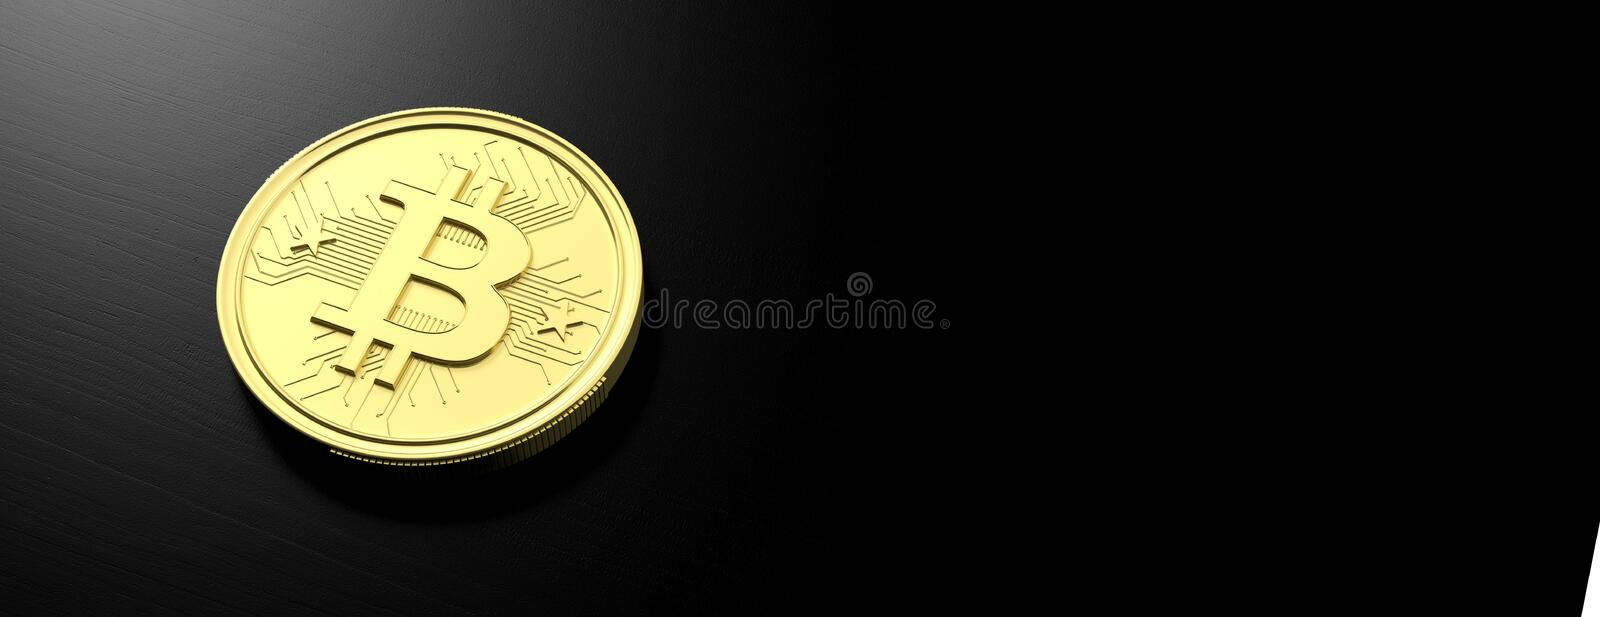 Bitcoin on black background, banner, copy space. 3d illustration. Cryptocurrency concept. Golden bitcoin on black background, banner, copy space. 3d illustration stock illustration